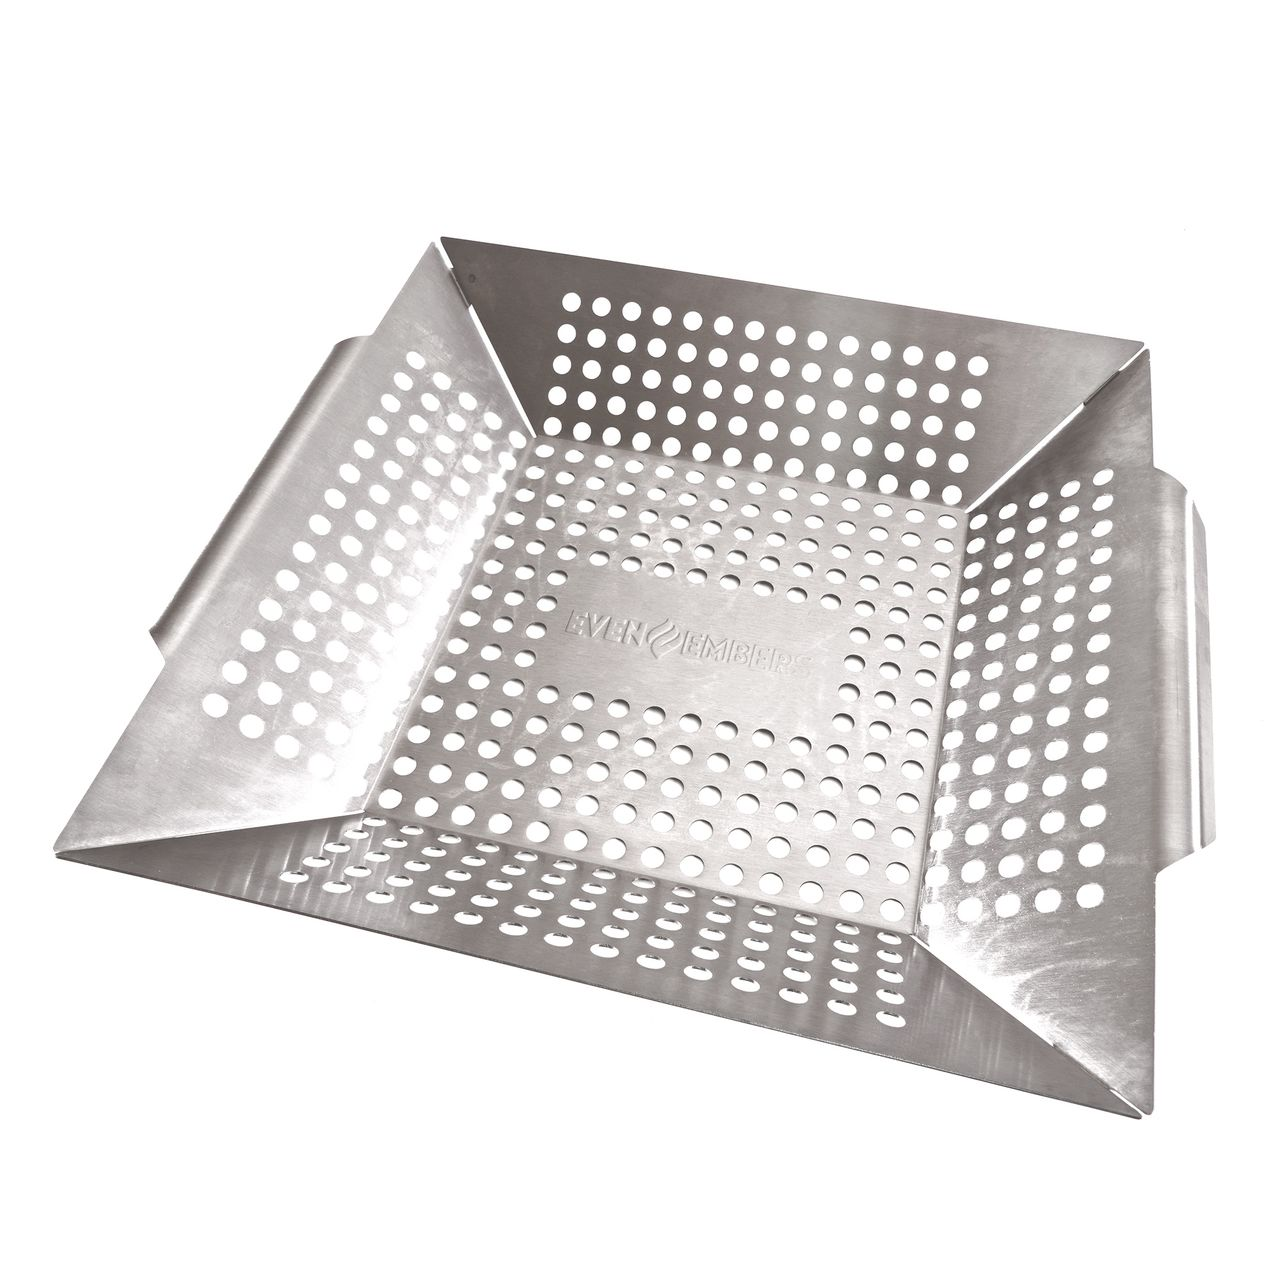 Even Embers Stainless Steel Grill Basket